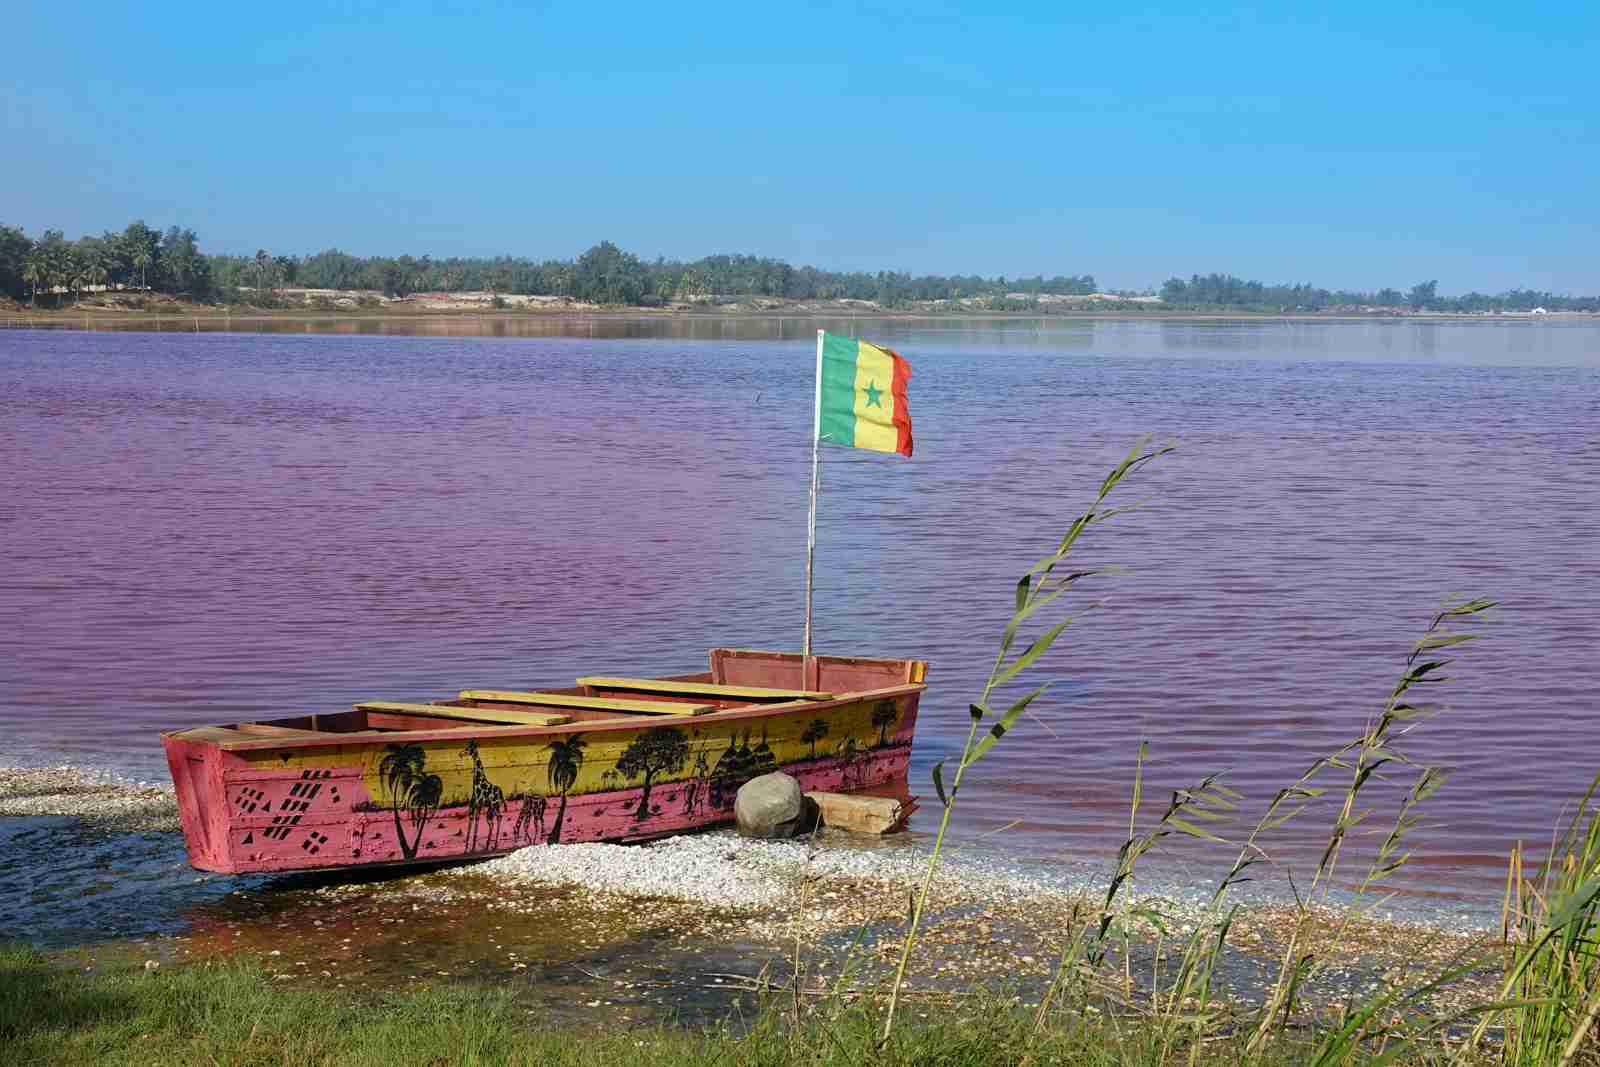 Retba Lake in Senegal. (Photo by Cyril Papot/Shutterstock)